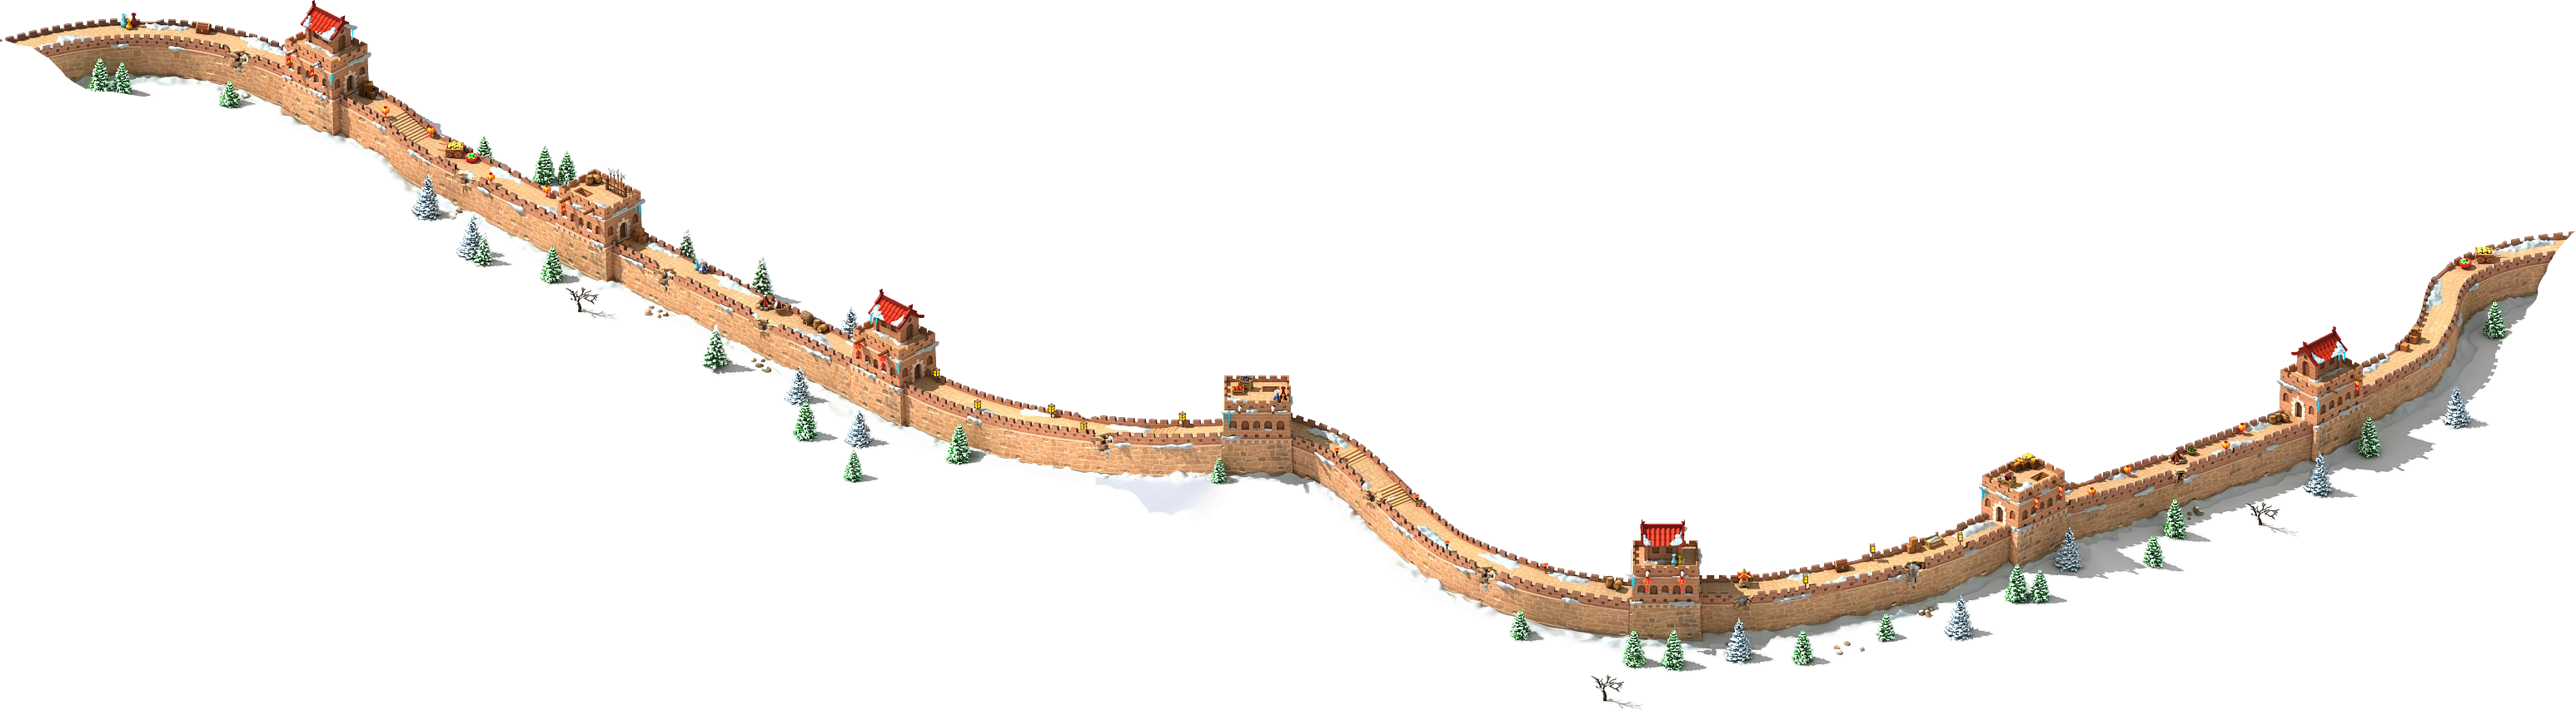 Great wall of china png. Image megapolis wiki fandom